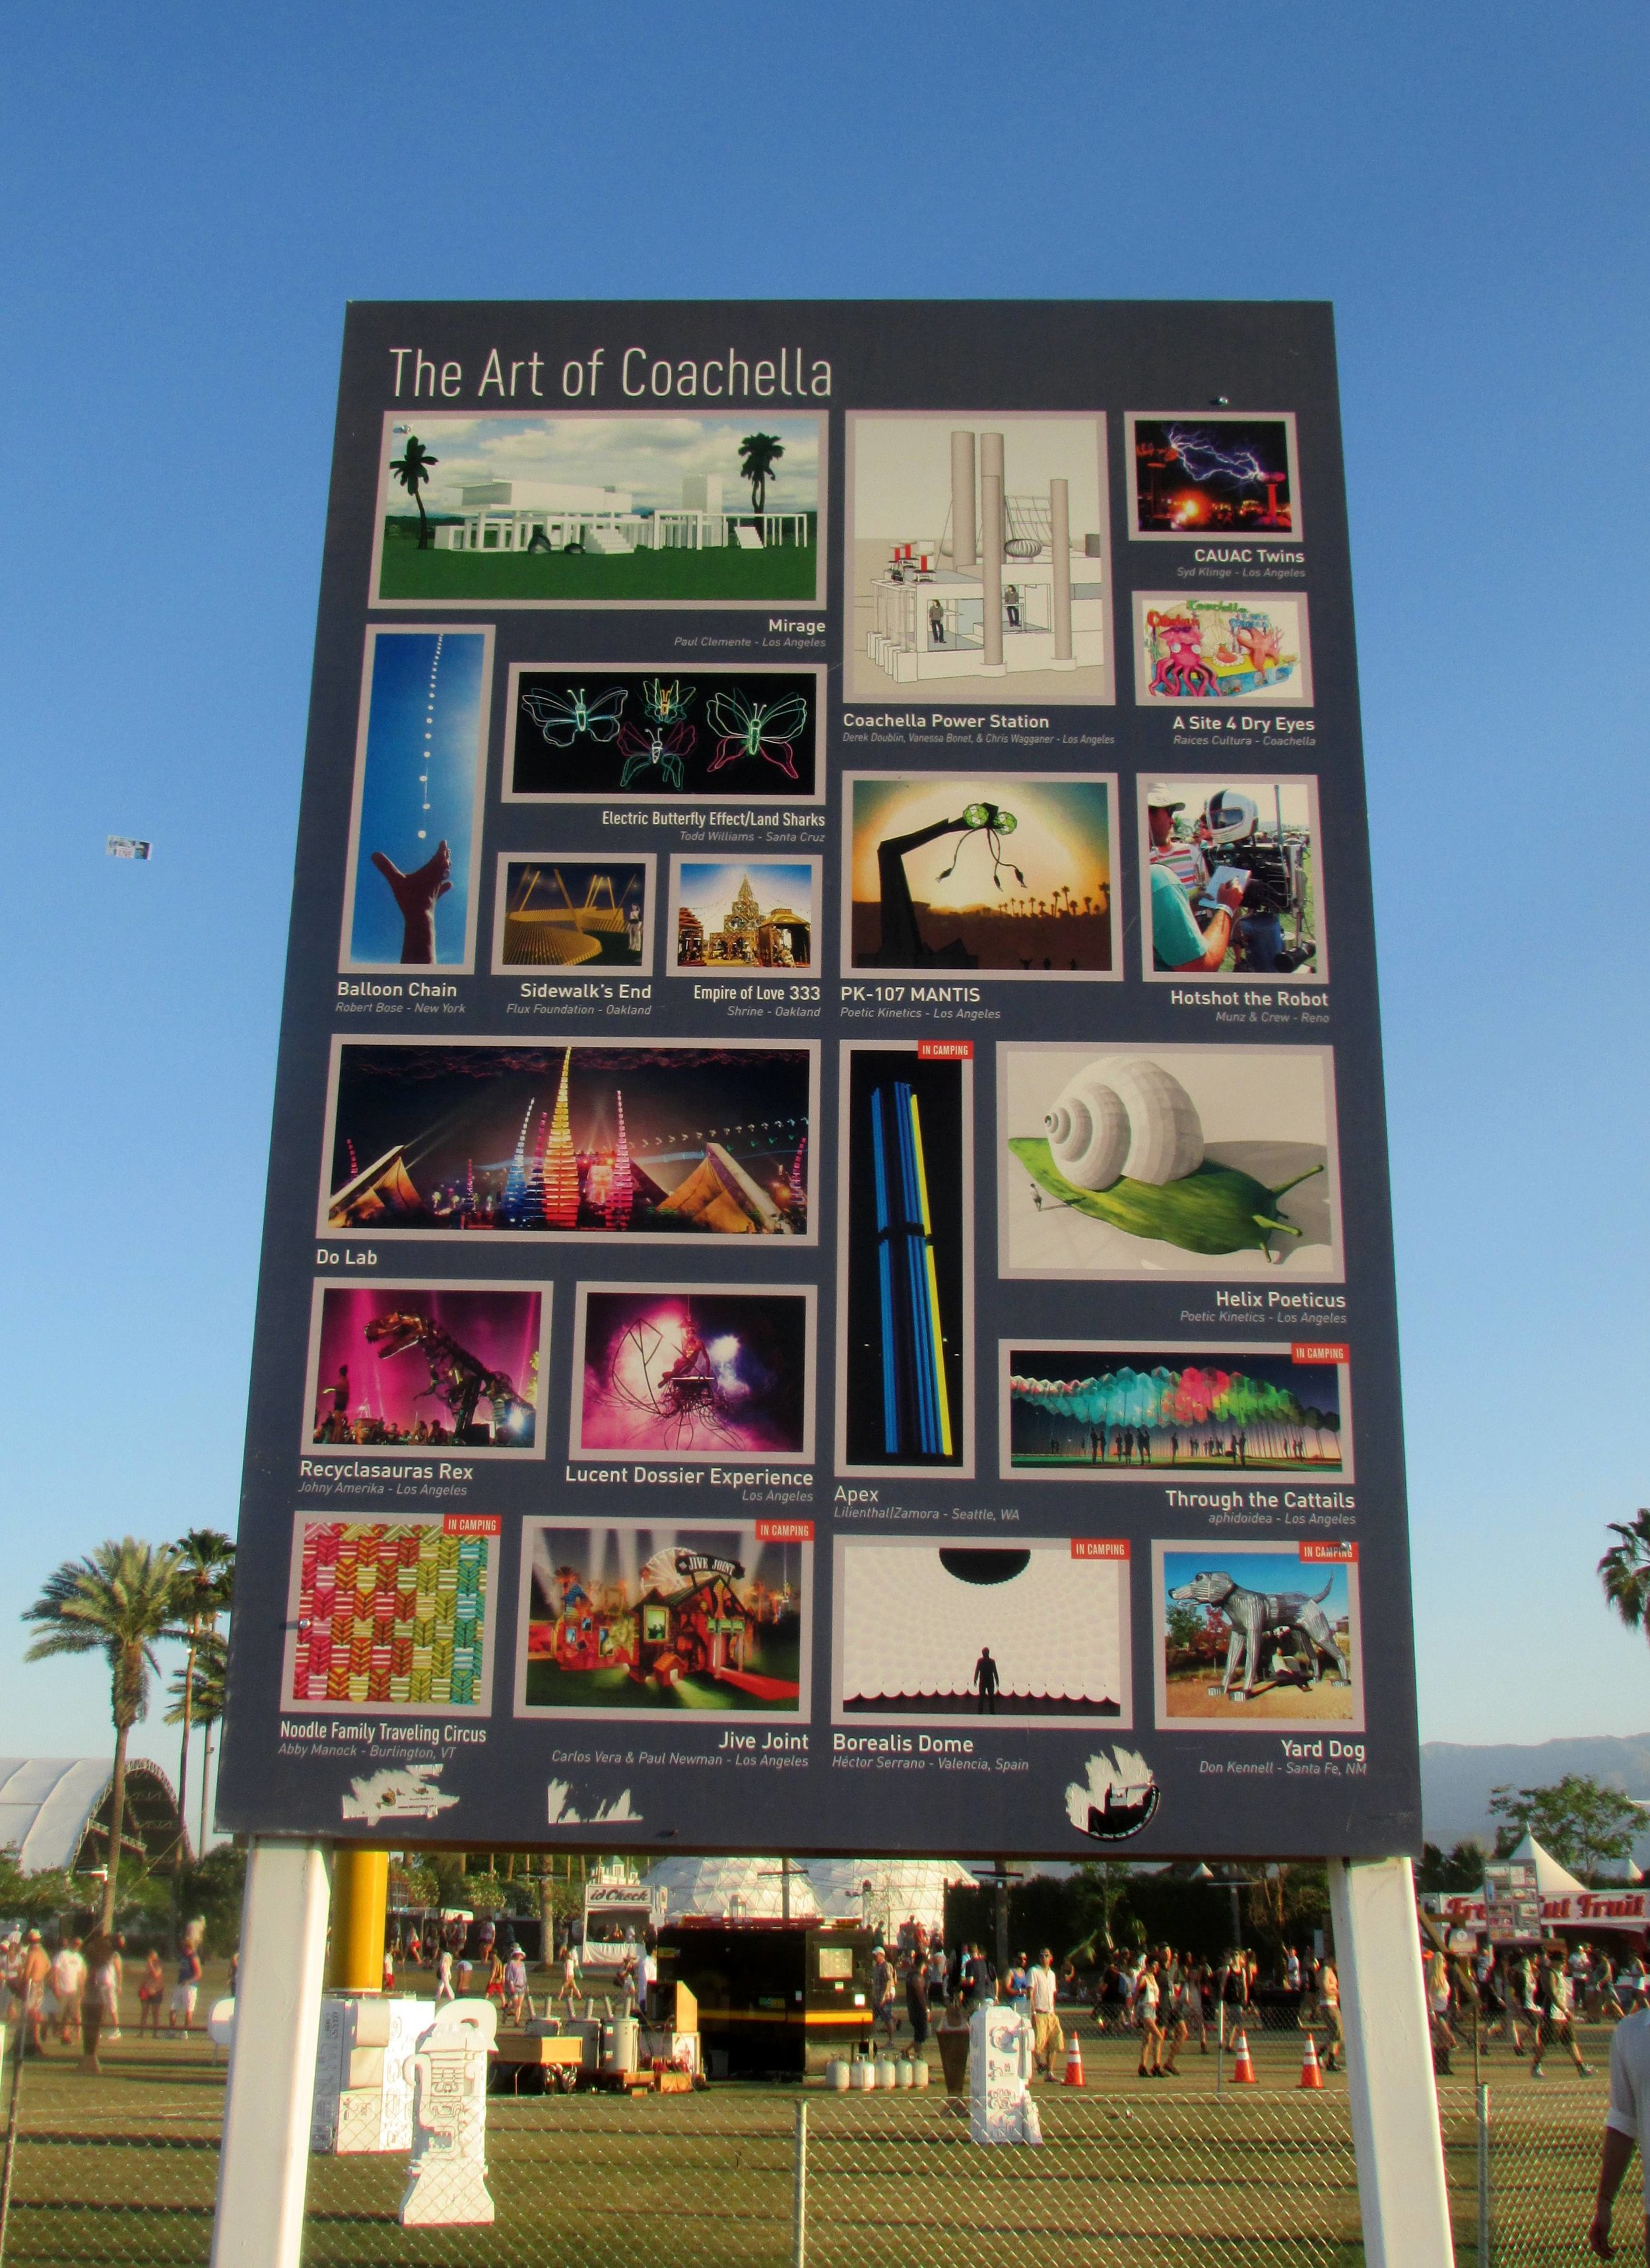 8 - The installation art has an overarching influence on the festival's aesthetic.JPG